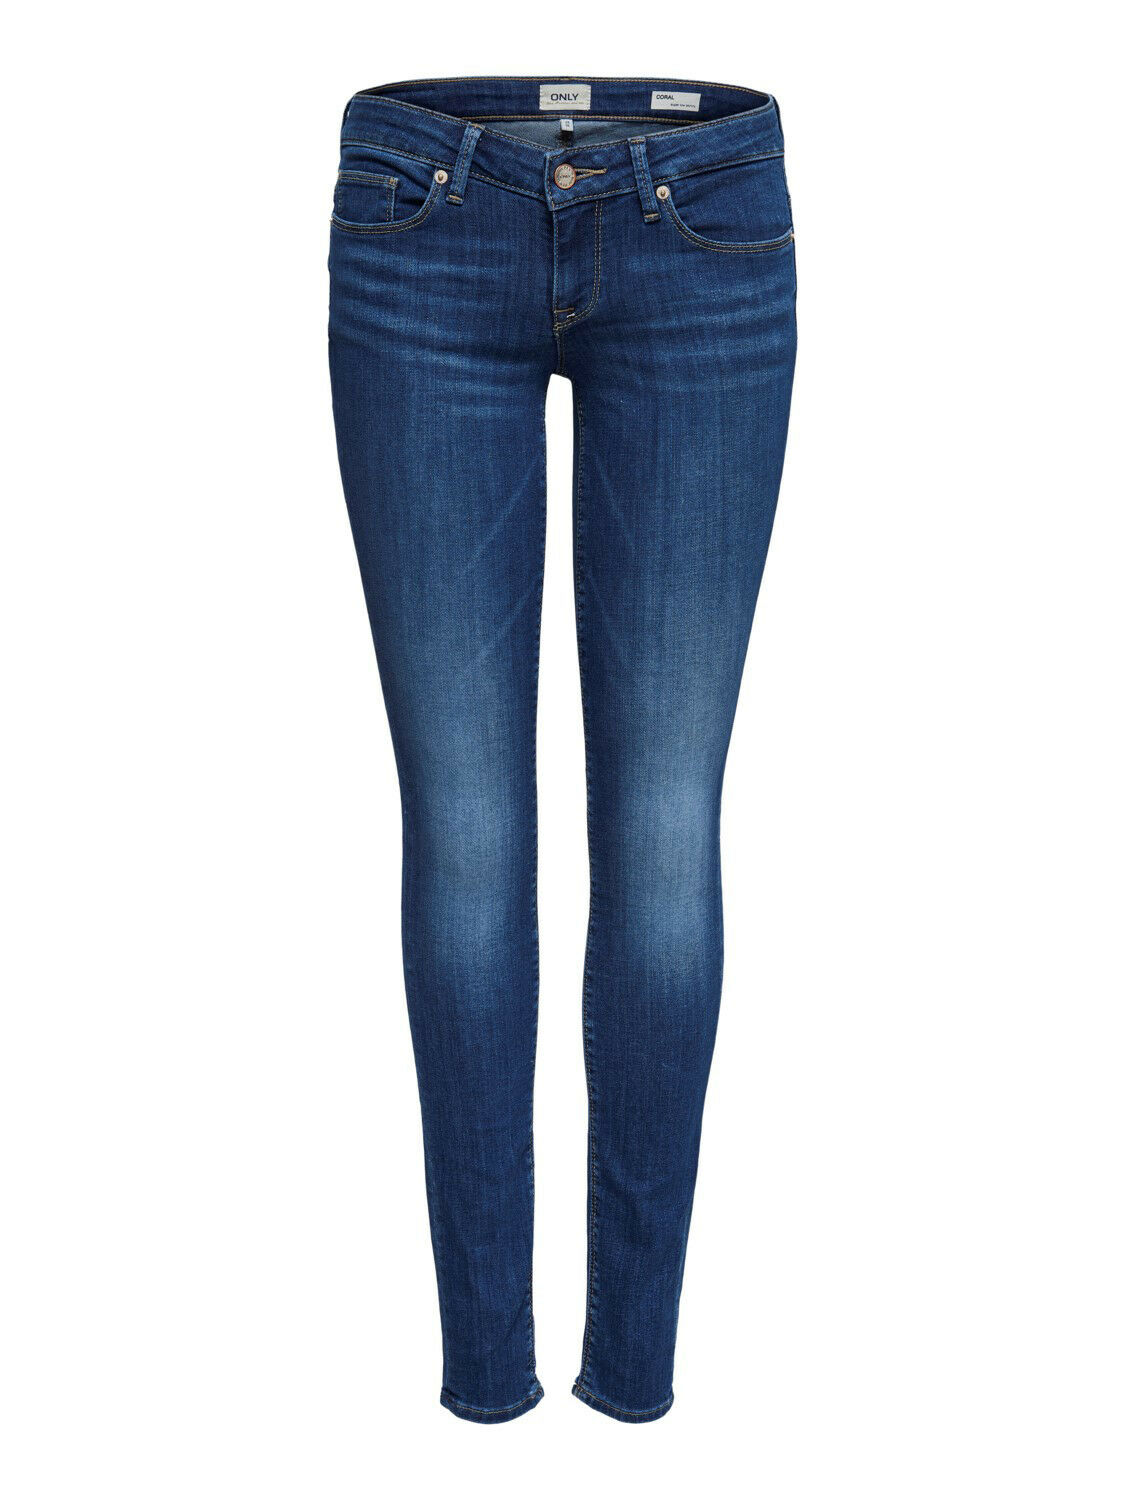 Only Jeans woman Coral Sl Dnm Jeans 15170741